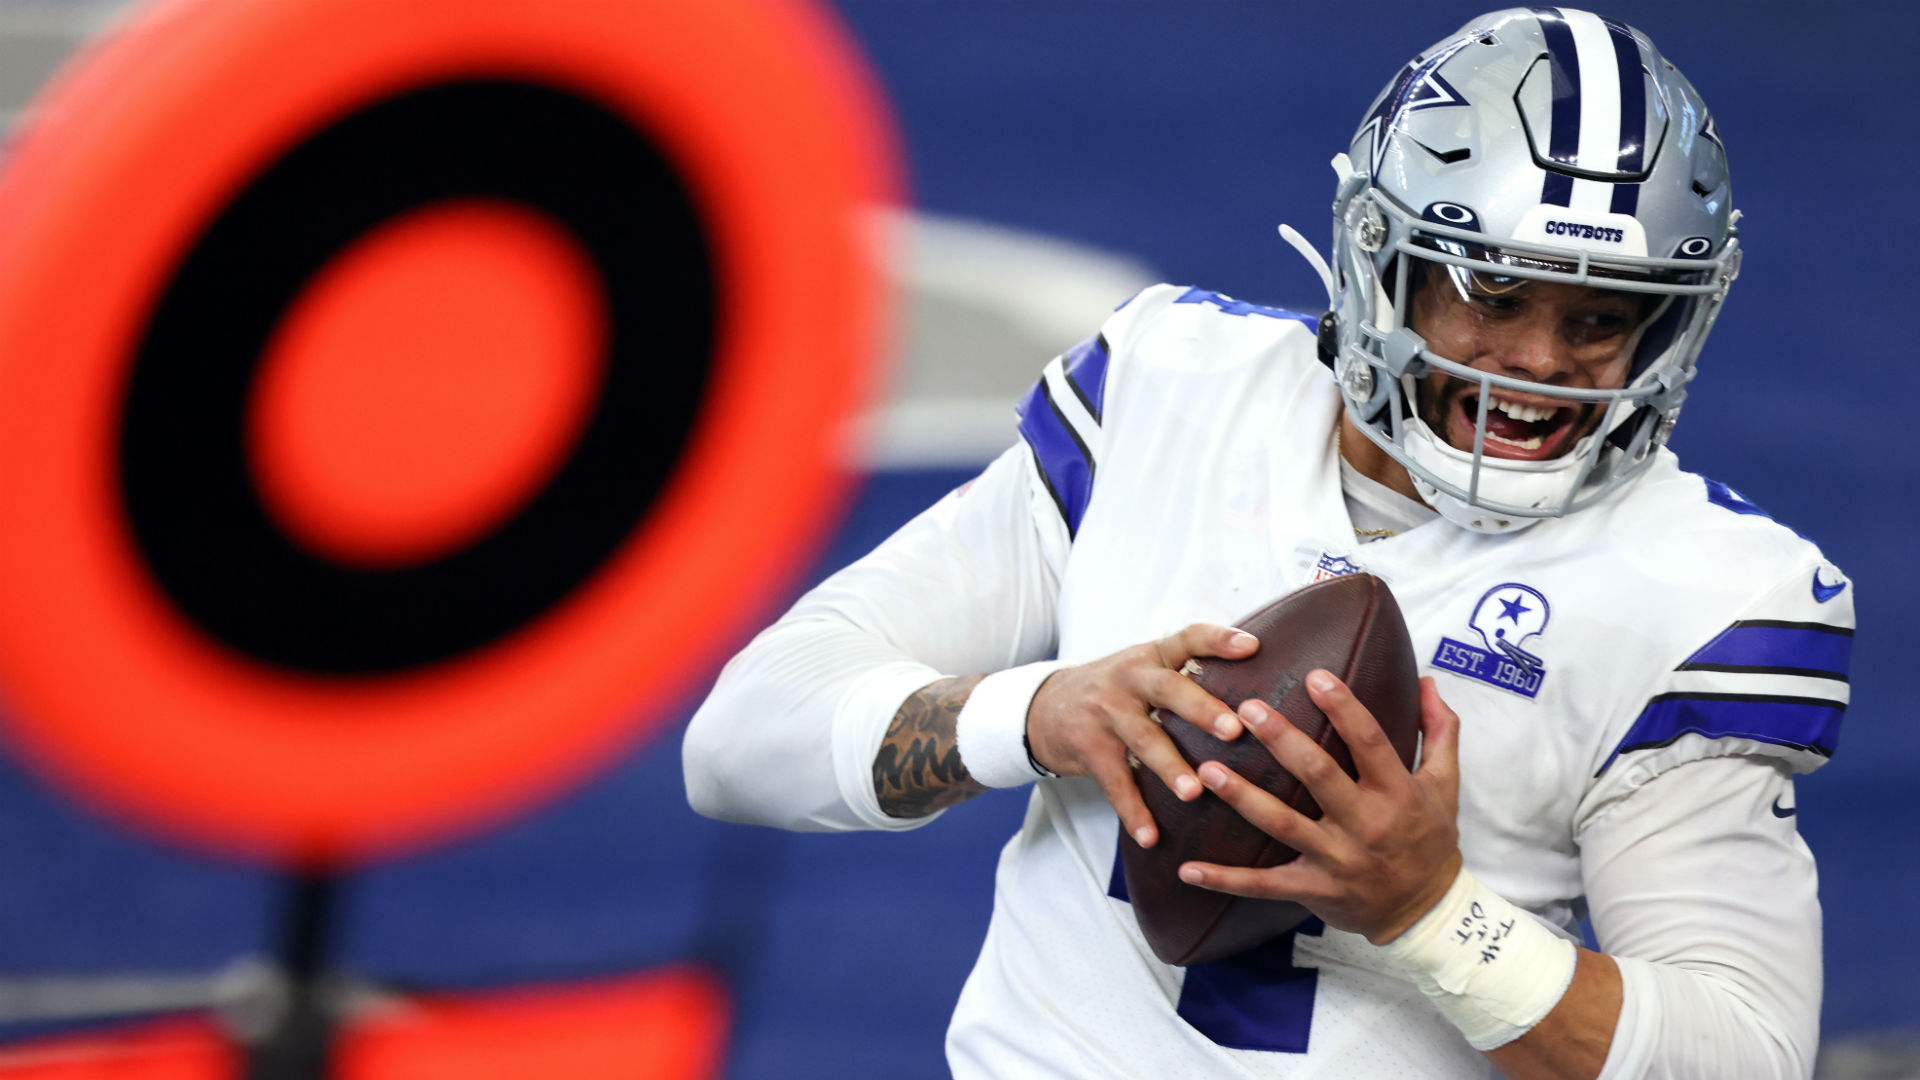 Cowboys' Dak Prescott caught a touchdown on a Philly Special lookalike 1